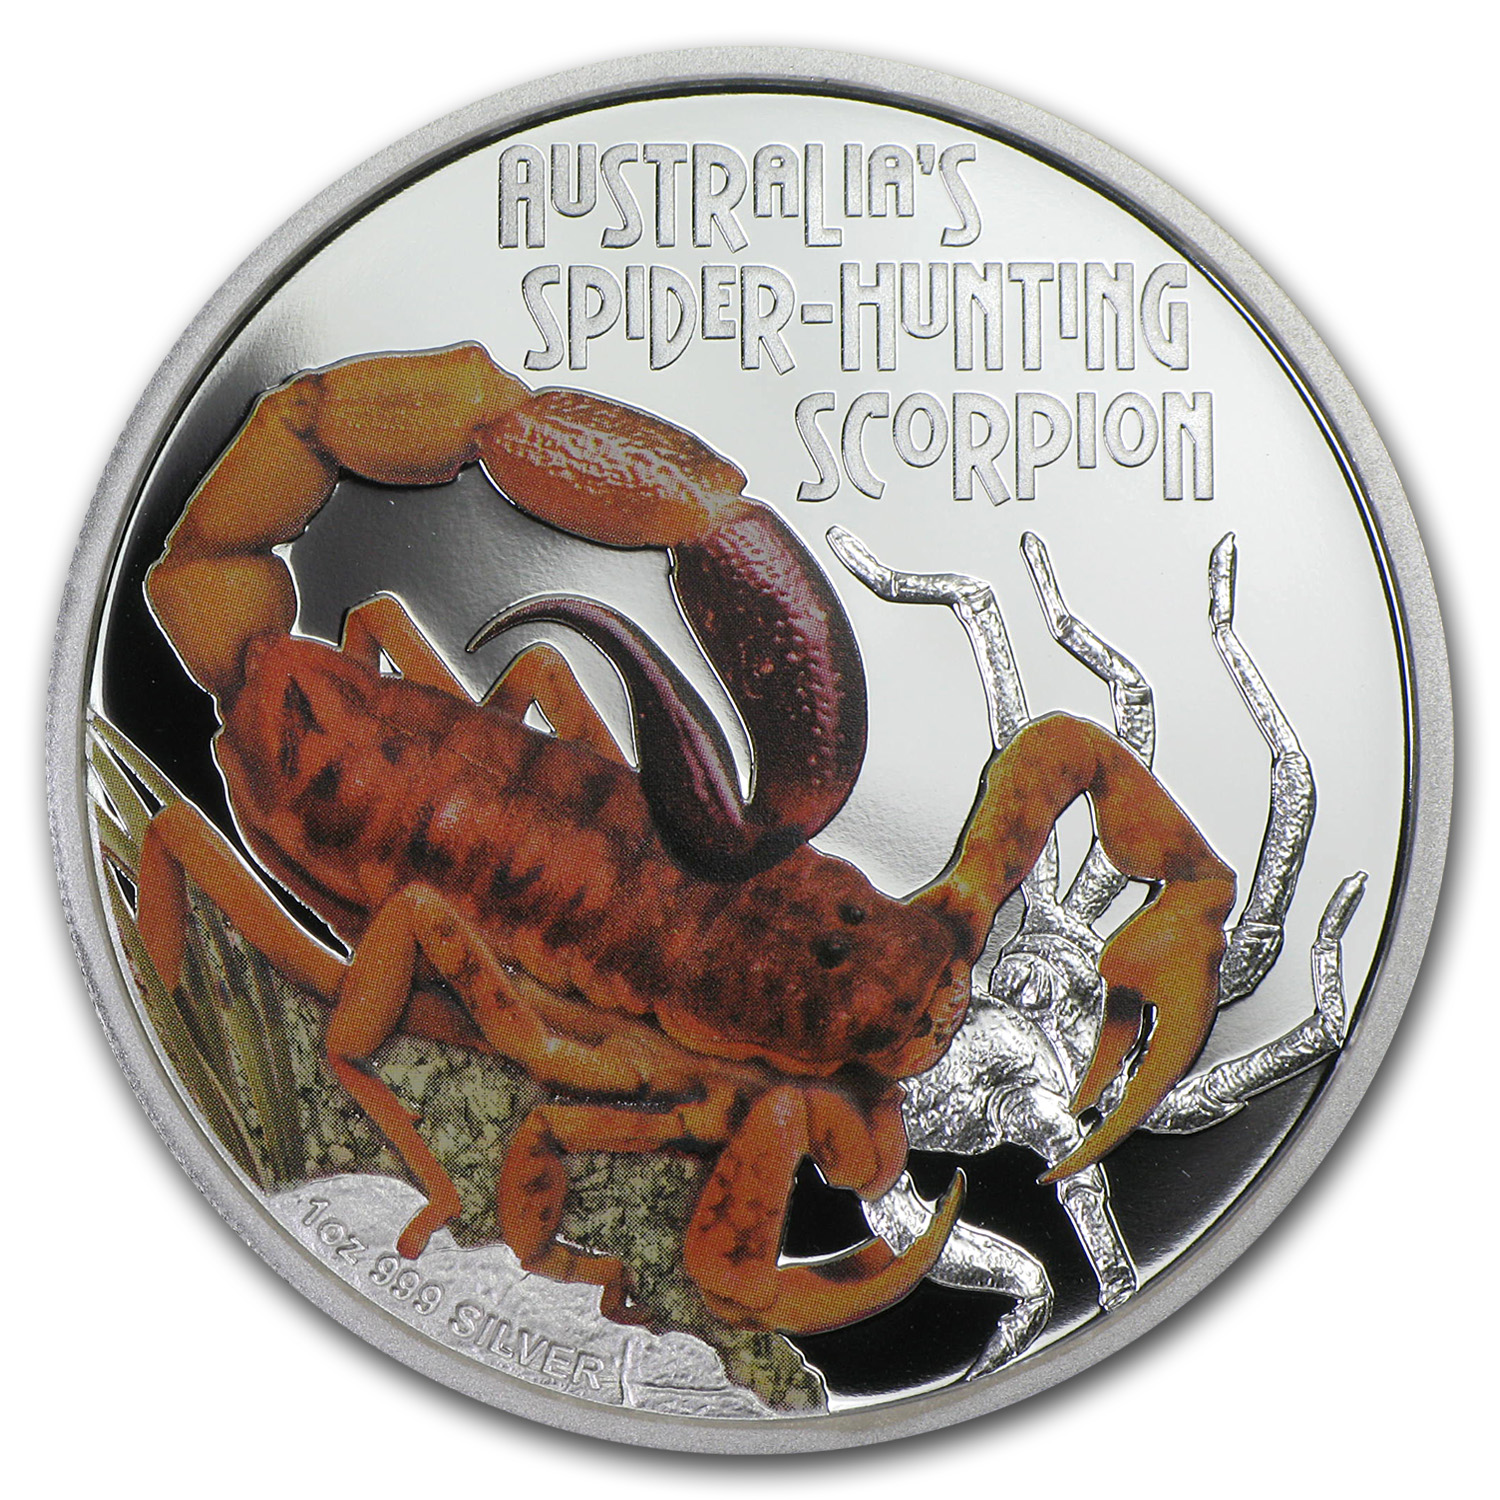 2014 Australia 1 oz Silver Spider - Hunting Scorpion Proof